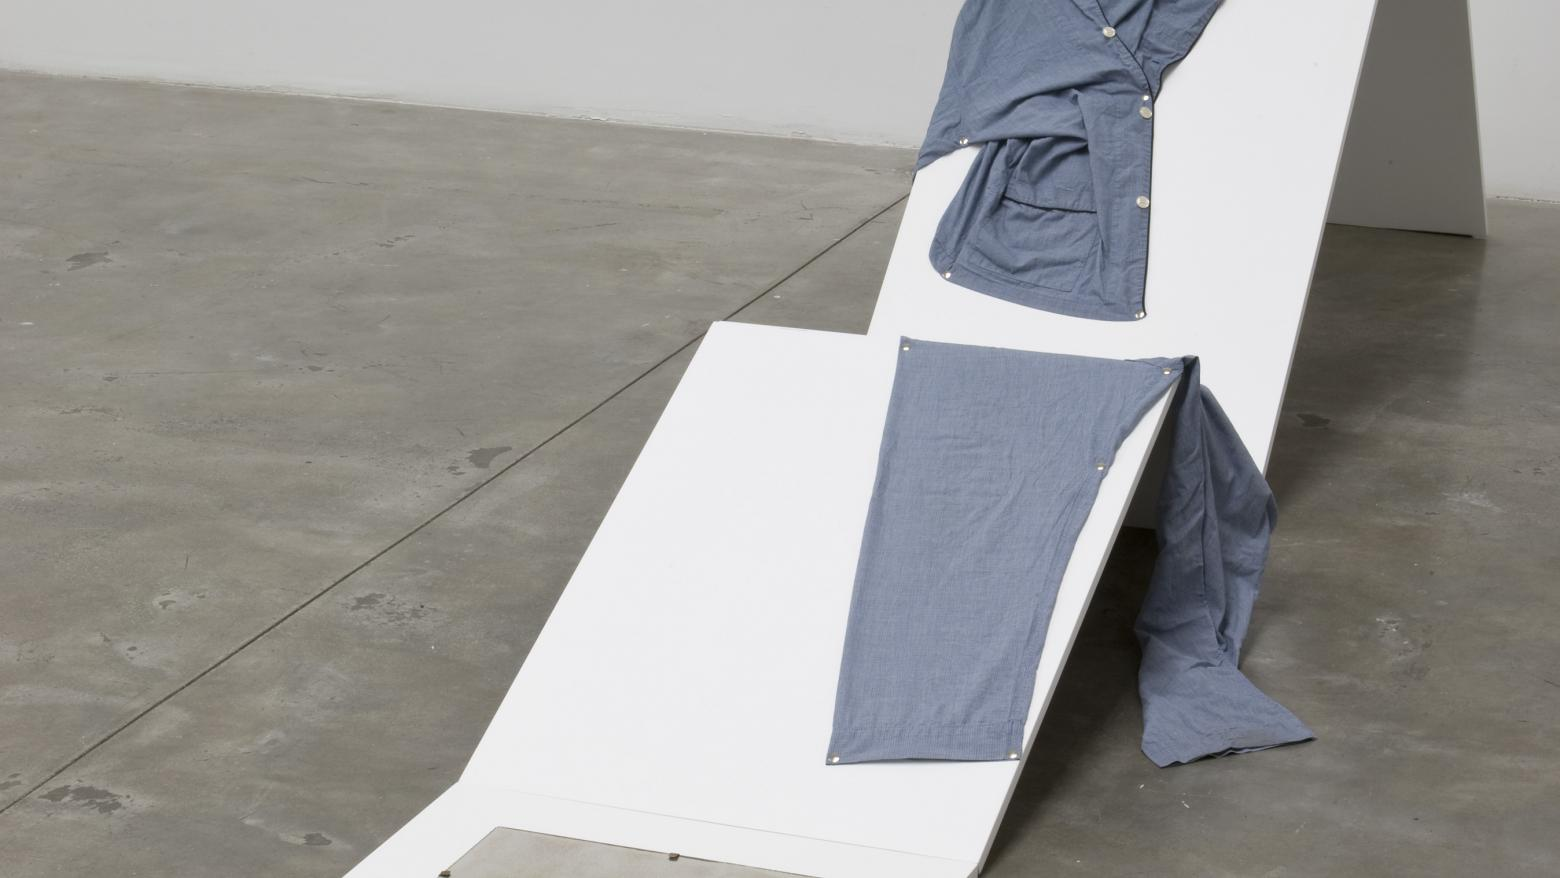 Tom Burr, Slumbering Object of My Sleepless Attention, 2009.